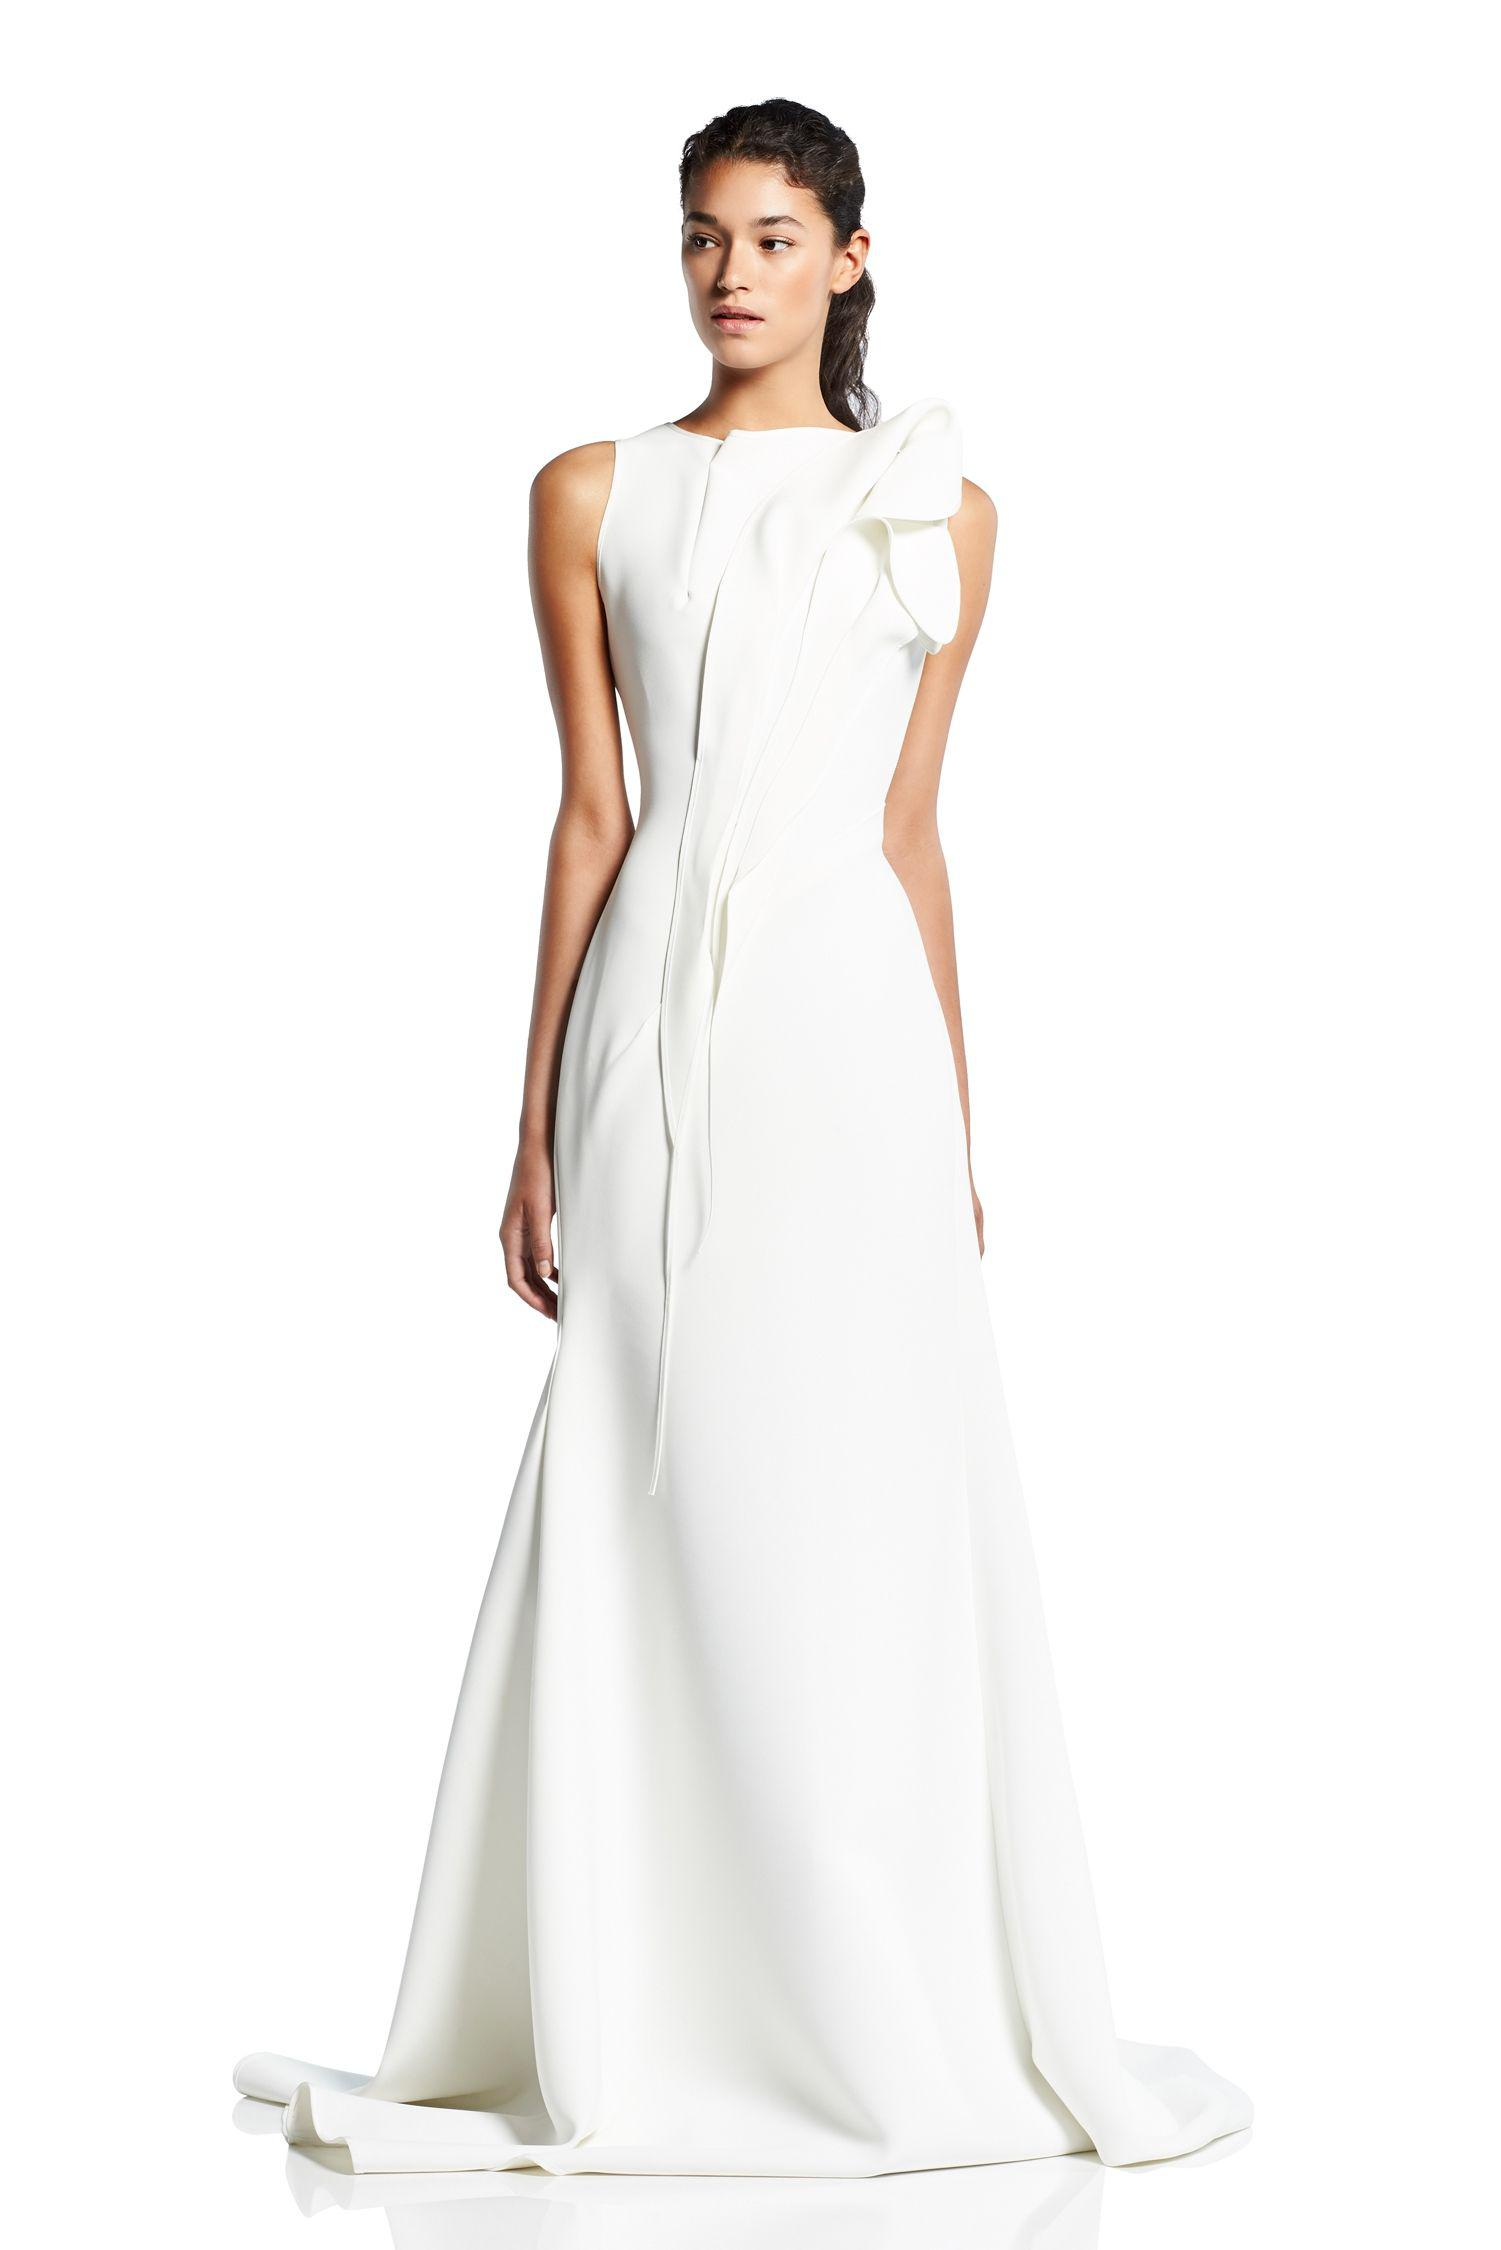 Avow Gown